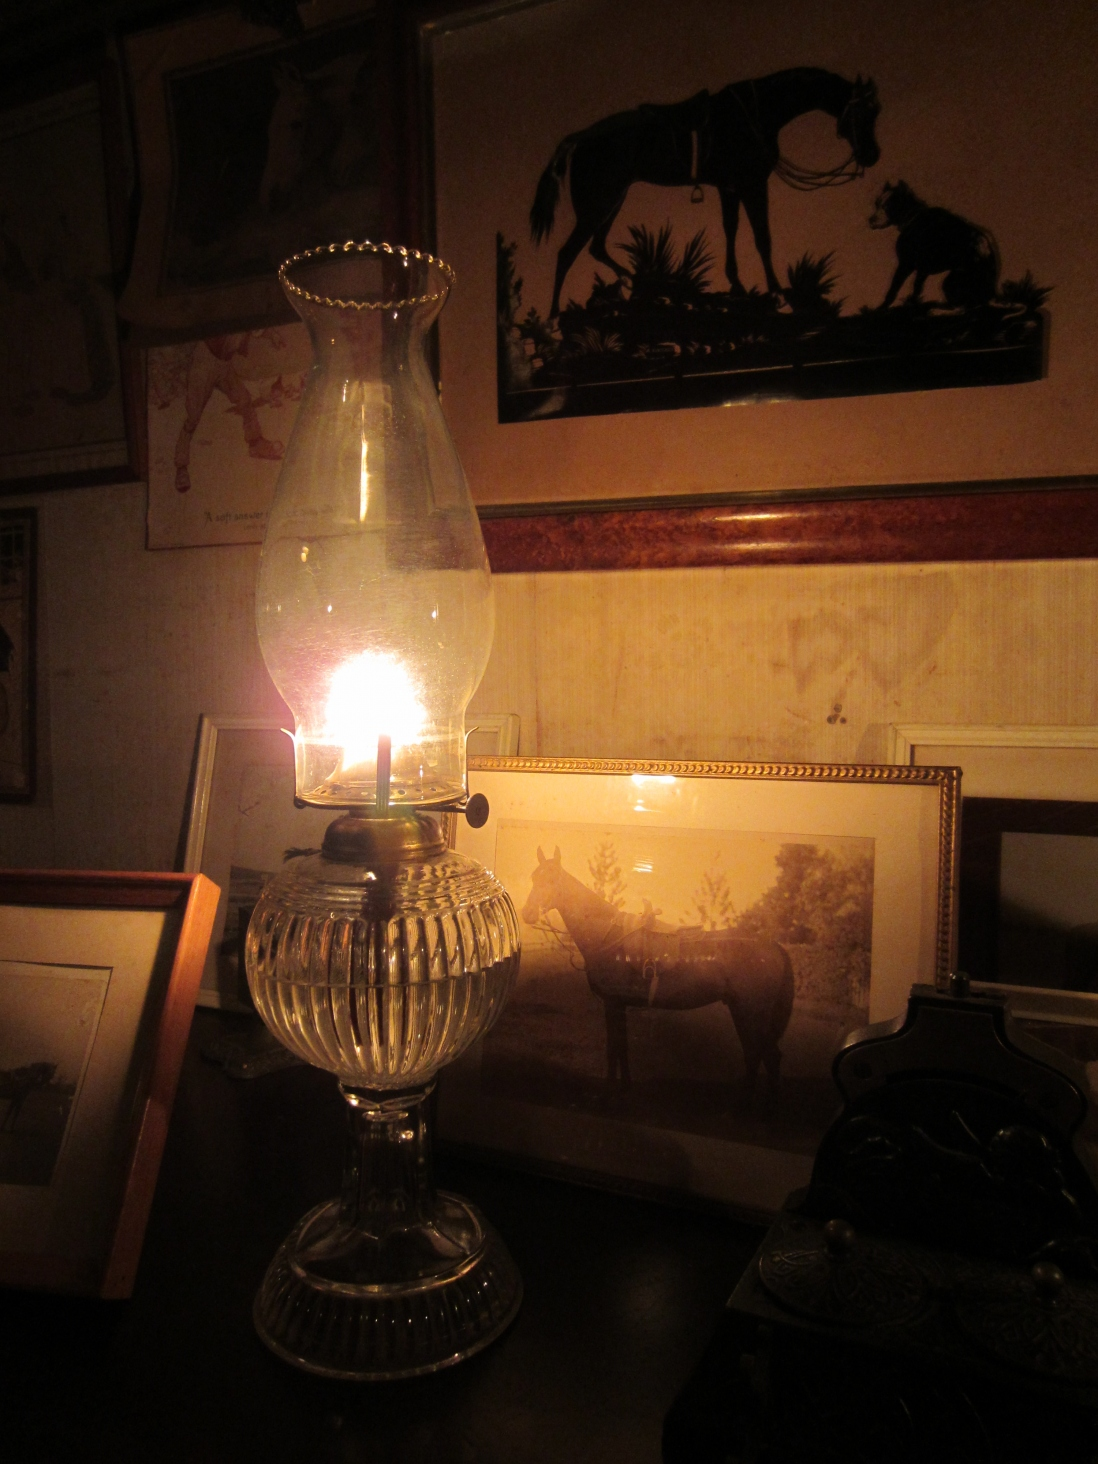 Kerosene lamp illuminating a framed picture and wallpaper behind.